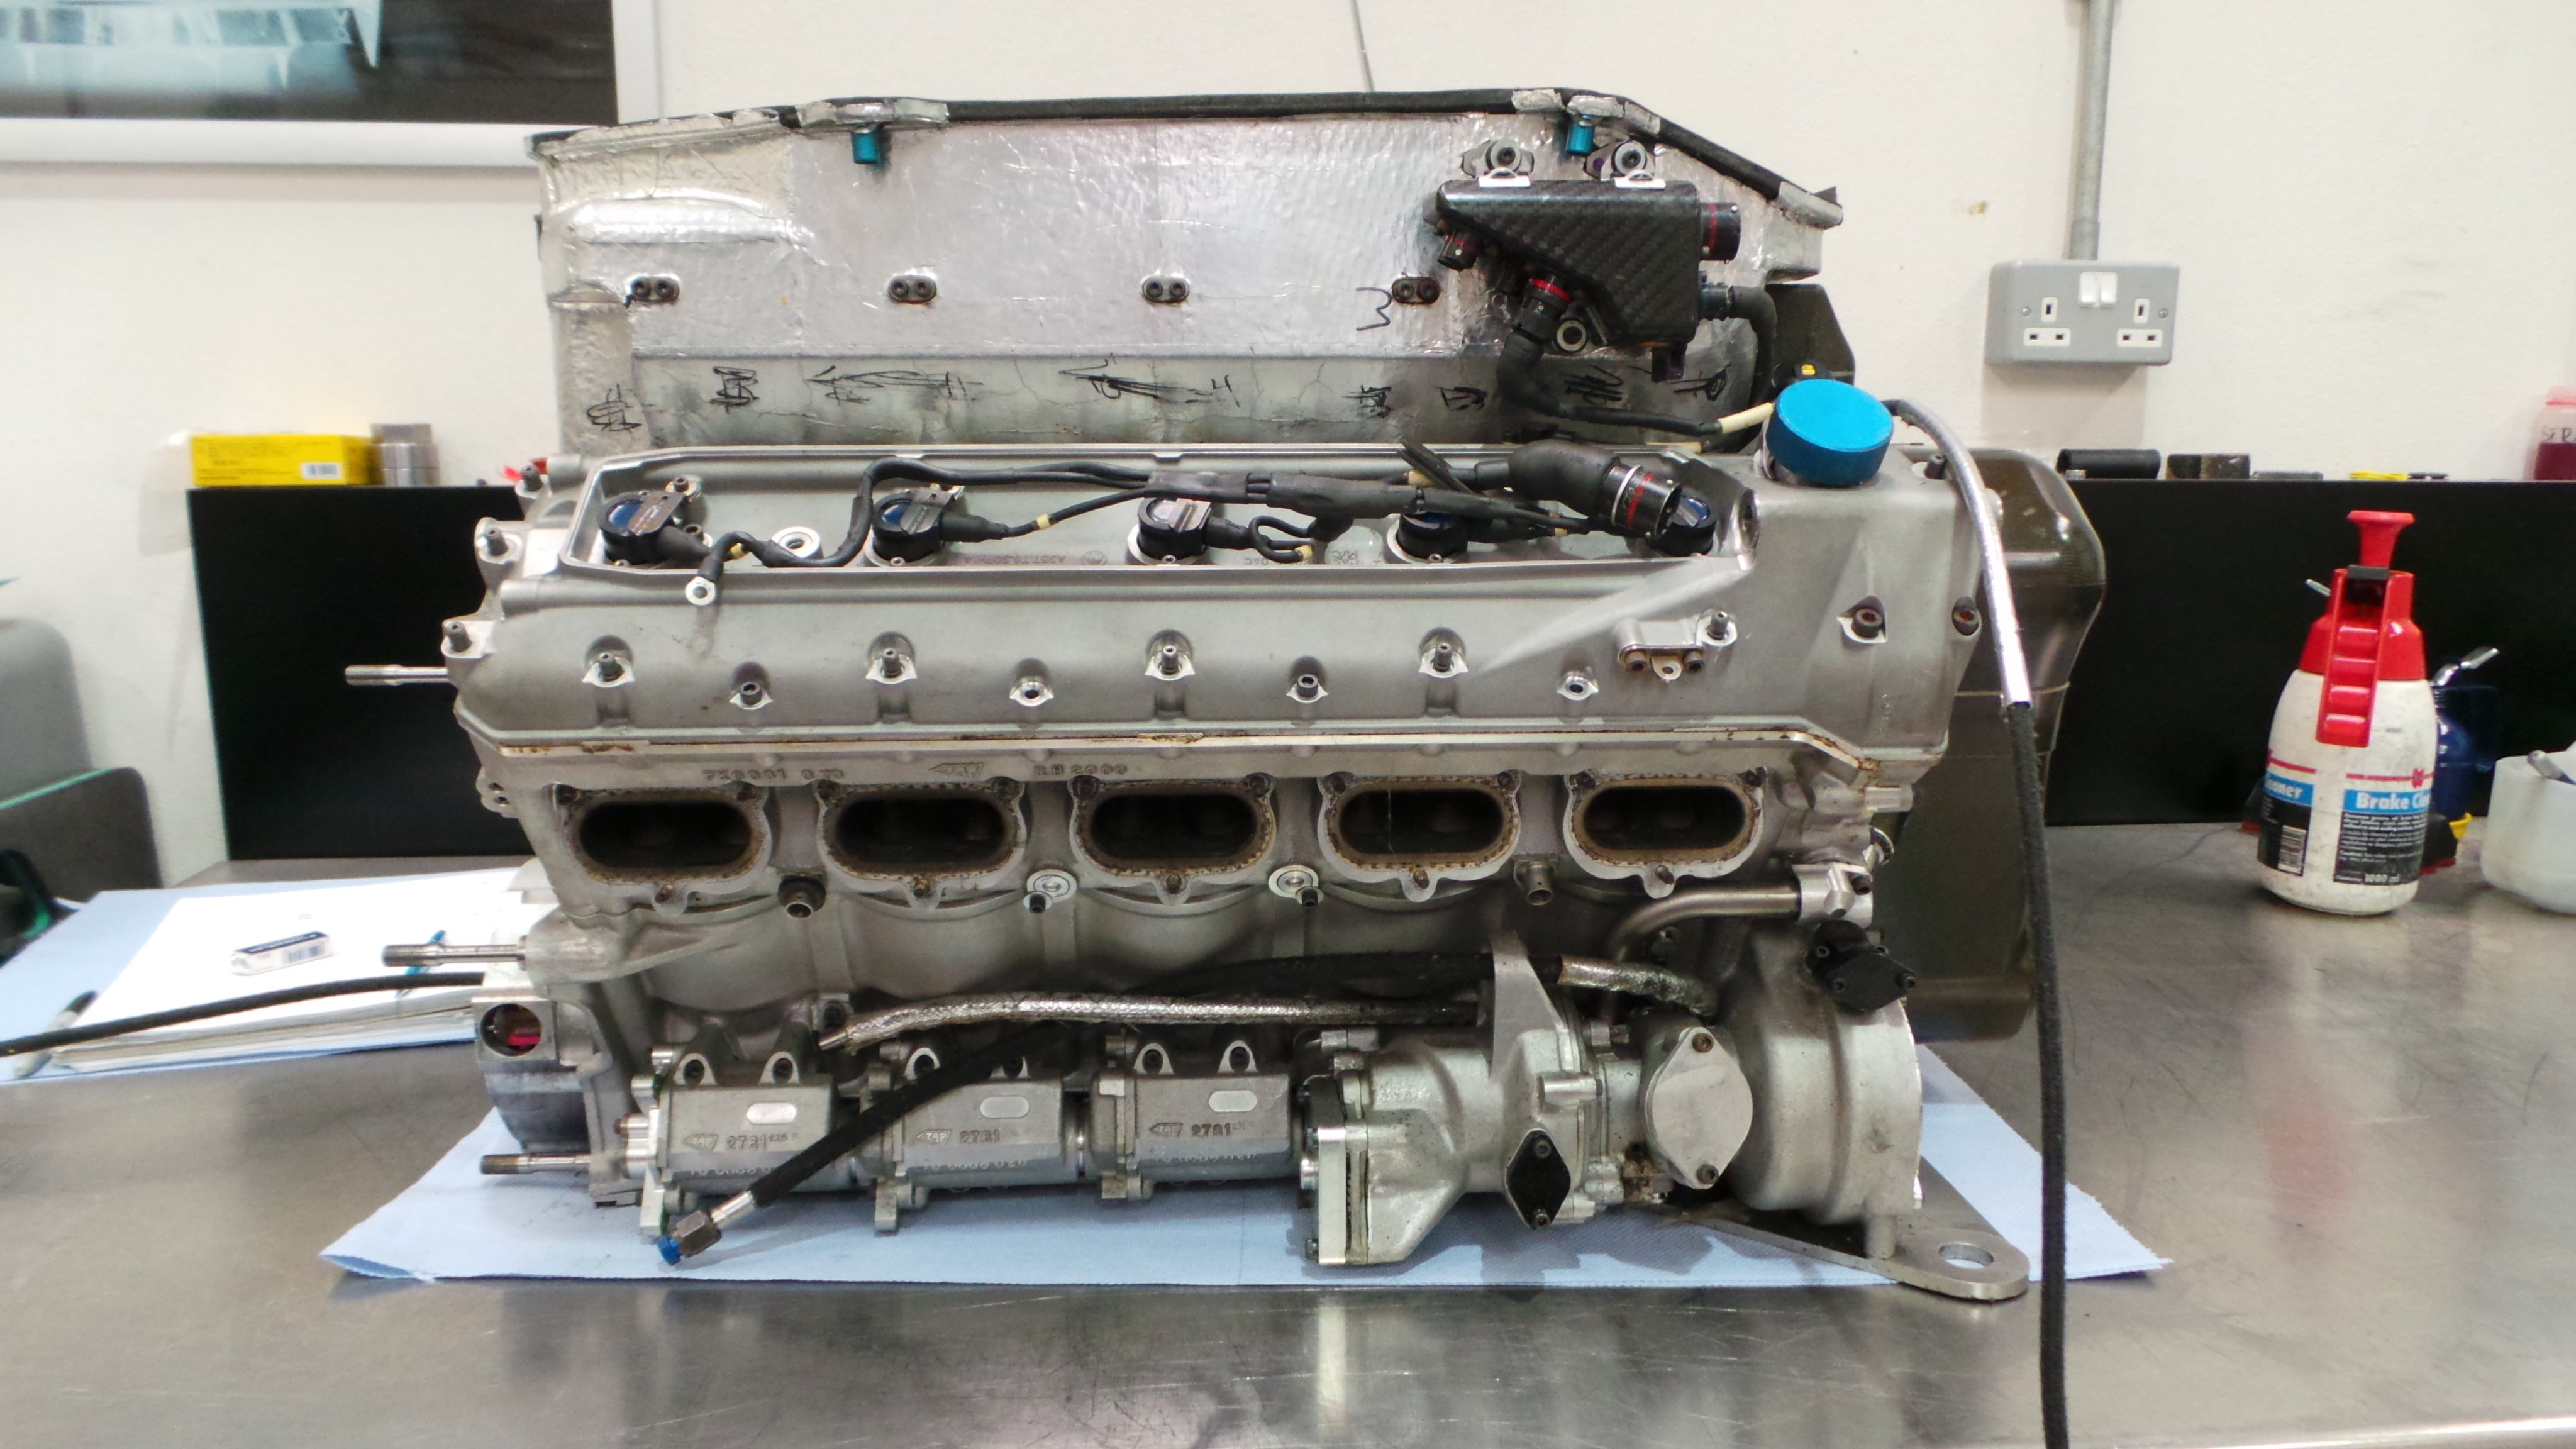 Mercedes V10 F1 Engine - Picture Thread - F1technical.net